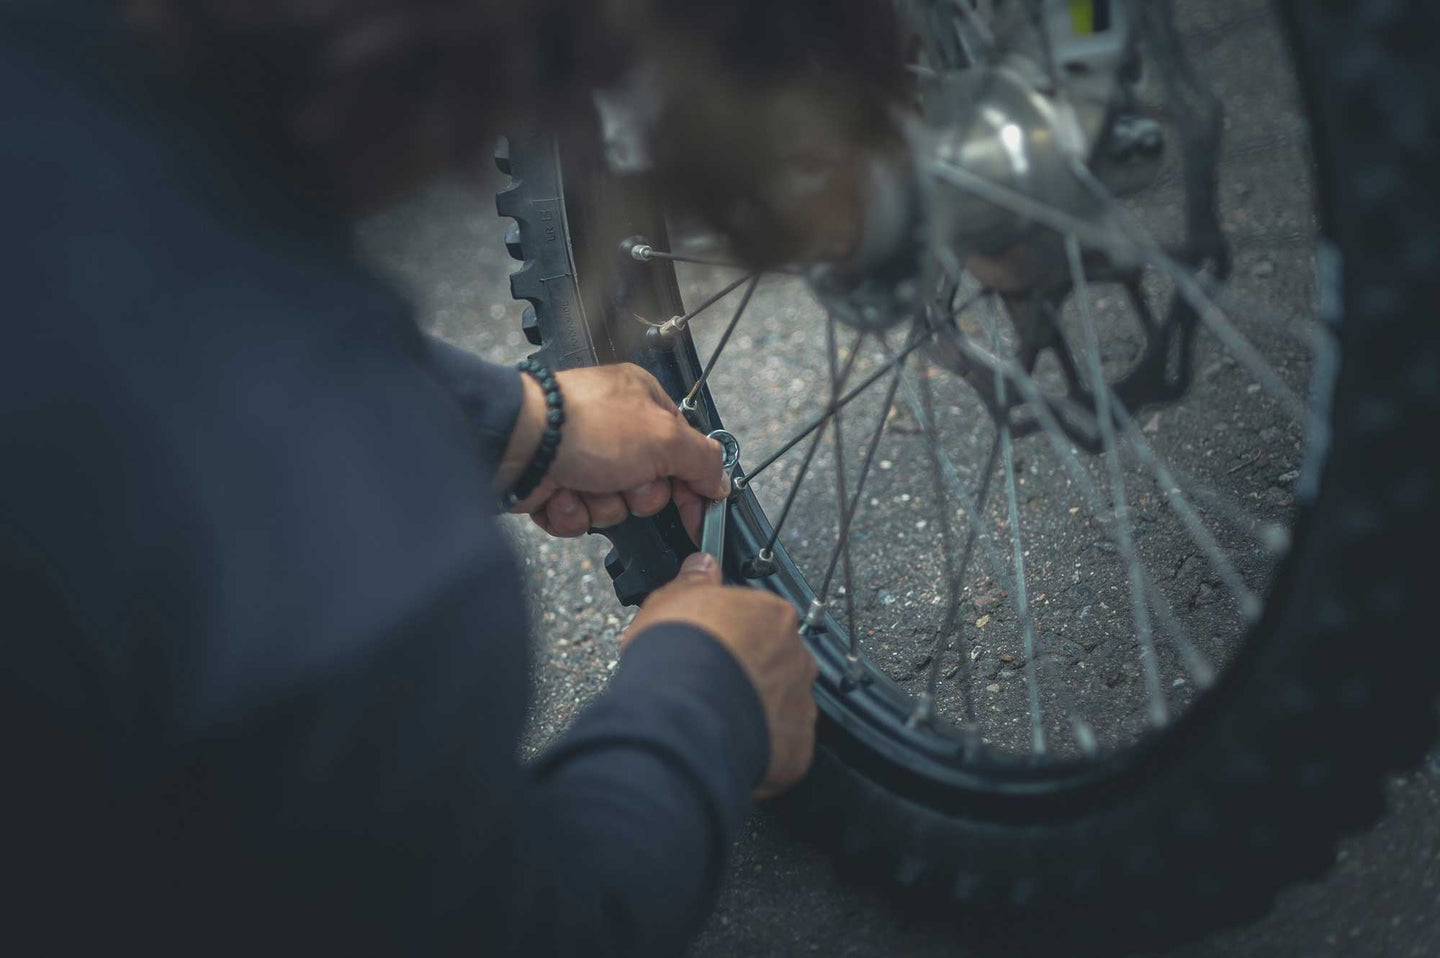 Person fixing a bike tire